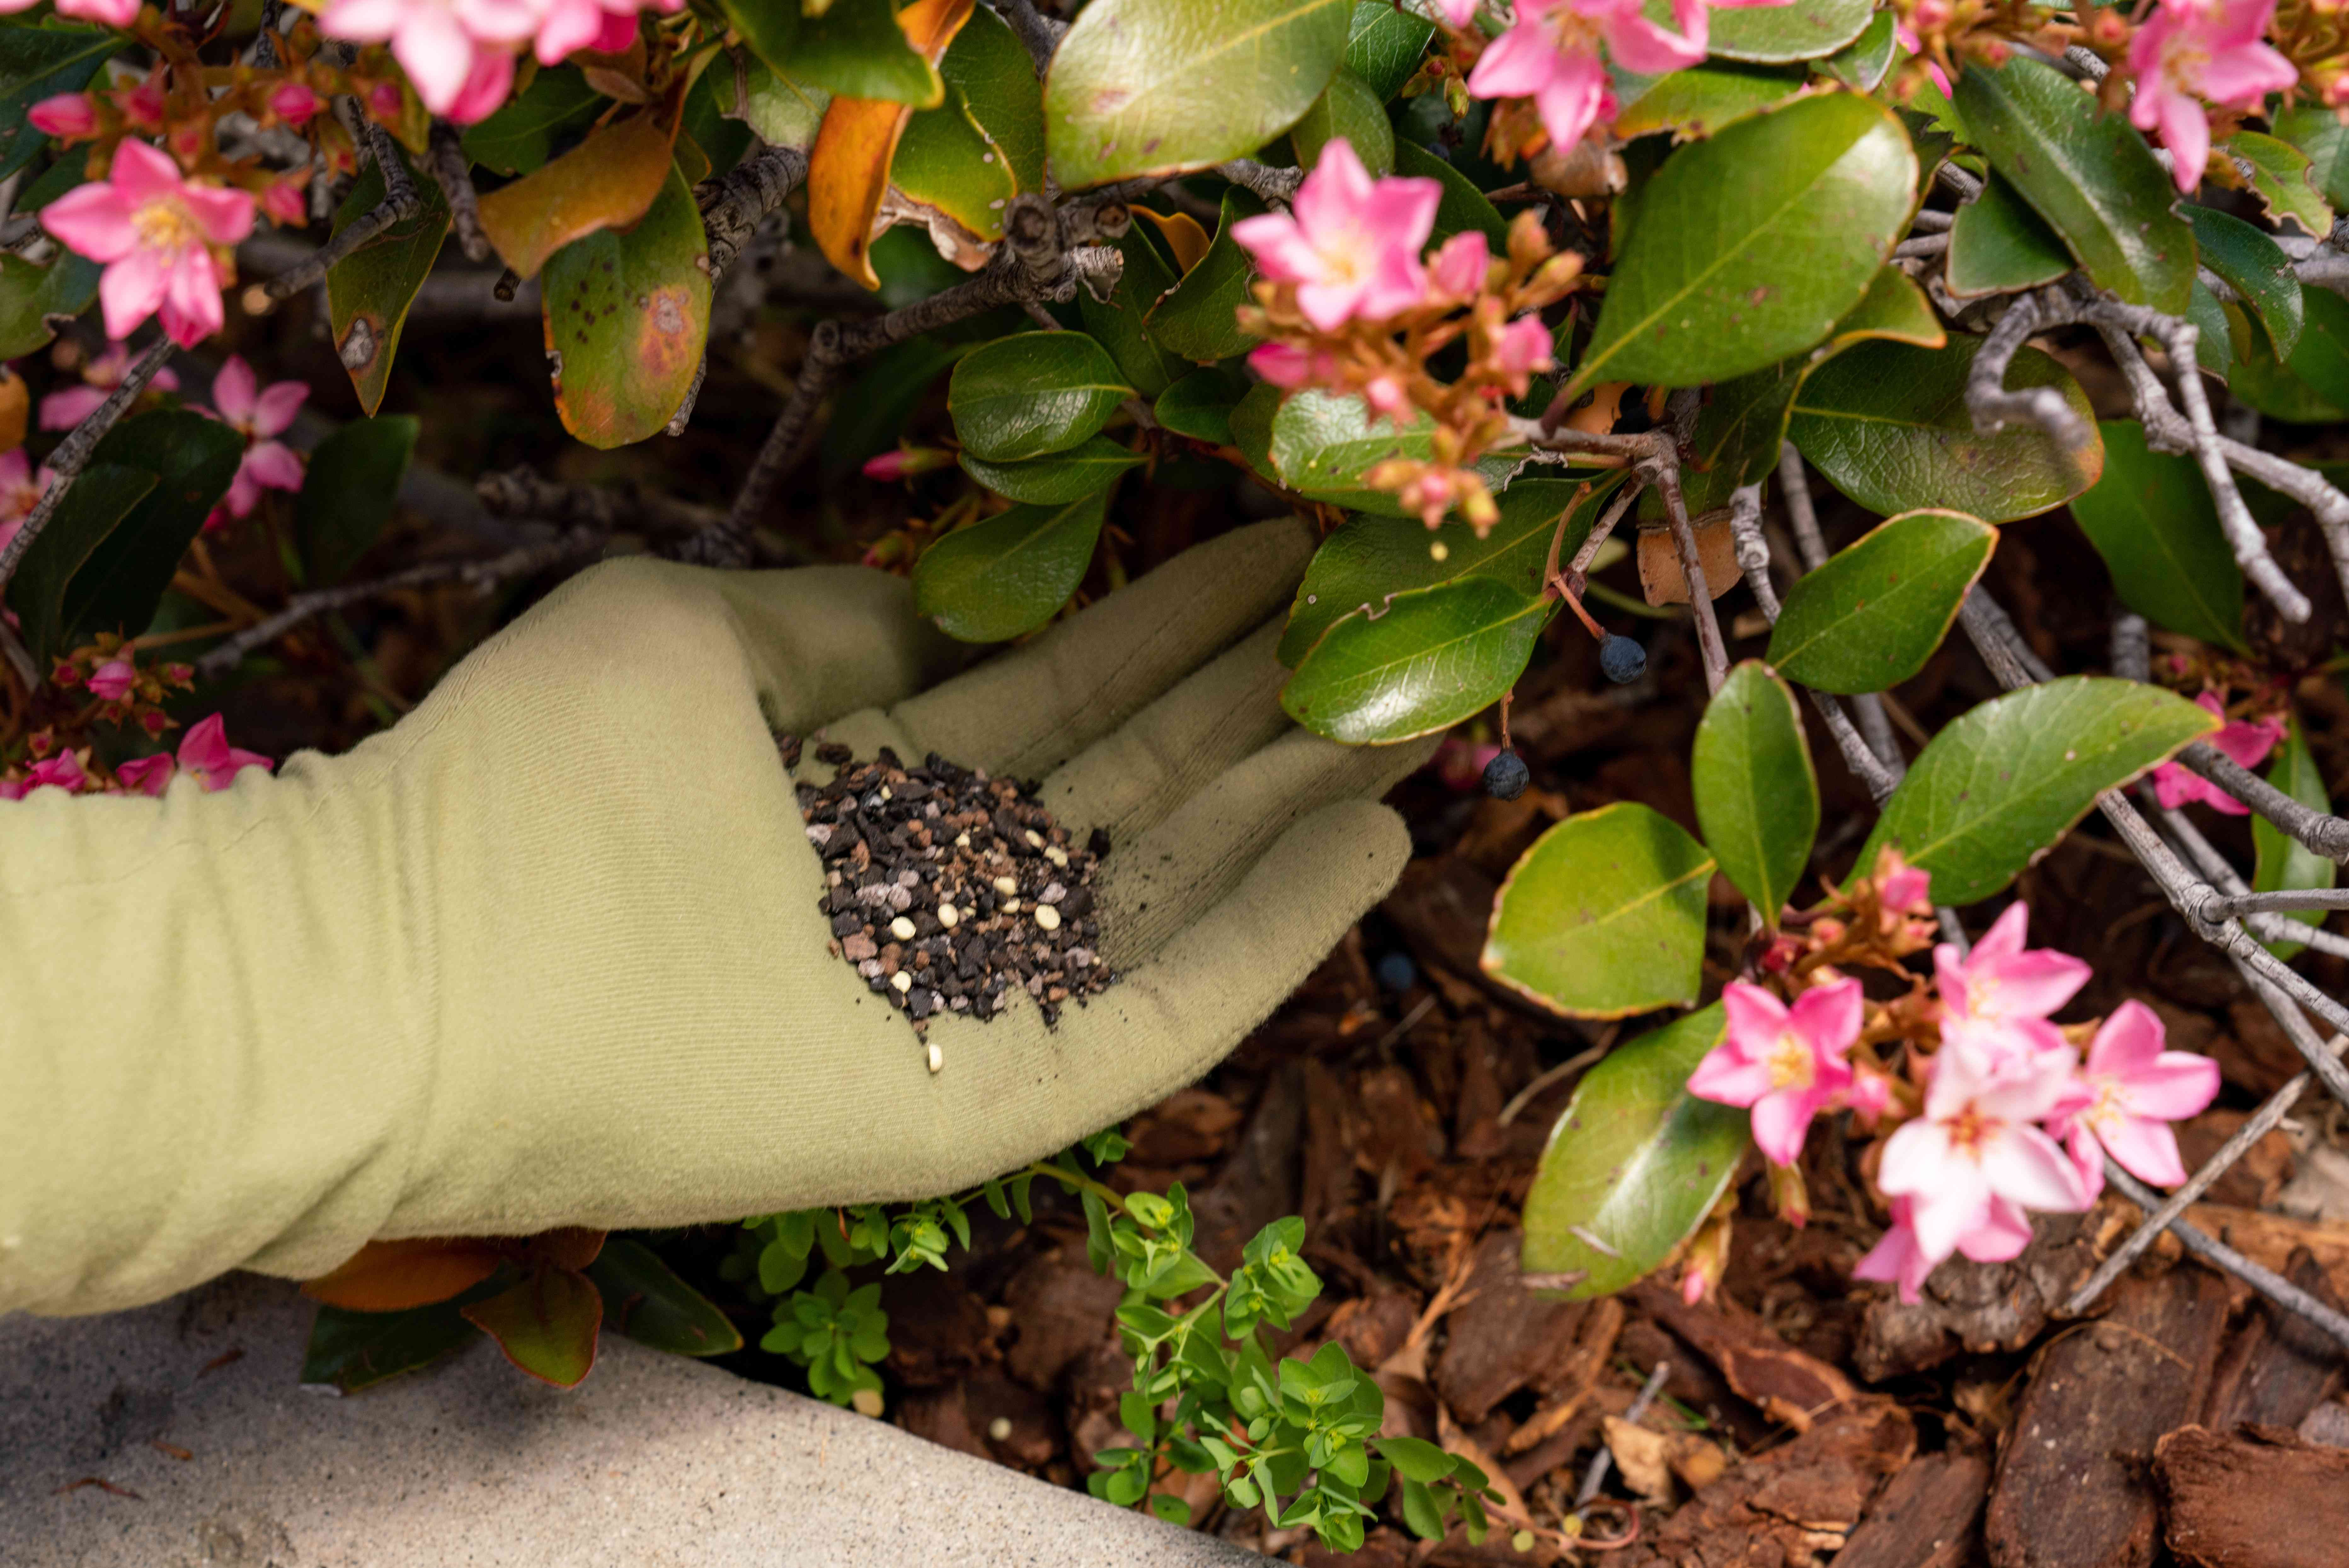 Fertilizer placed with tan glove under flowering plants with pink petals and leaves